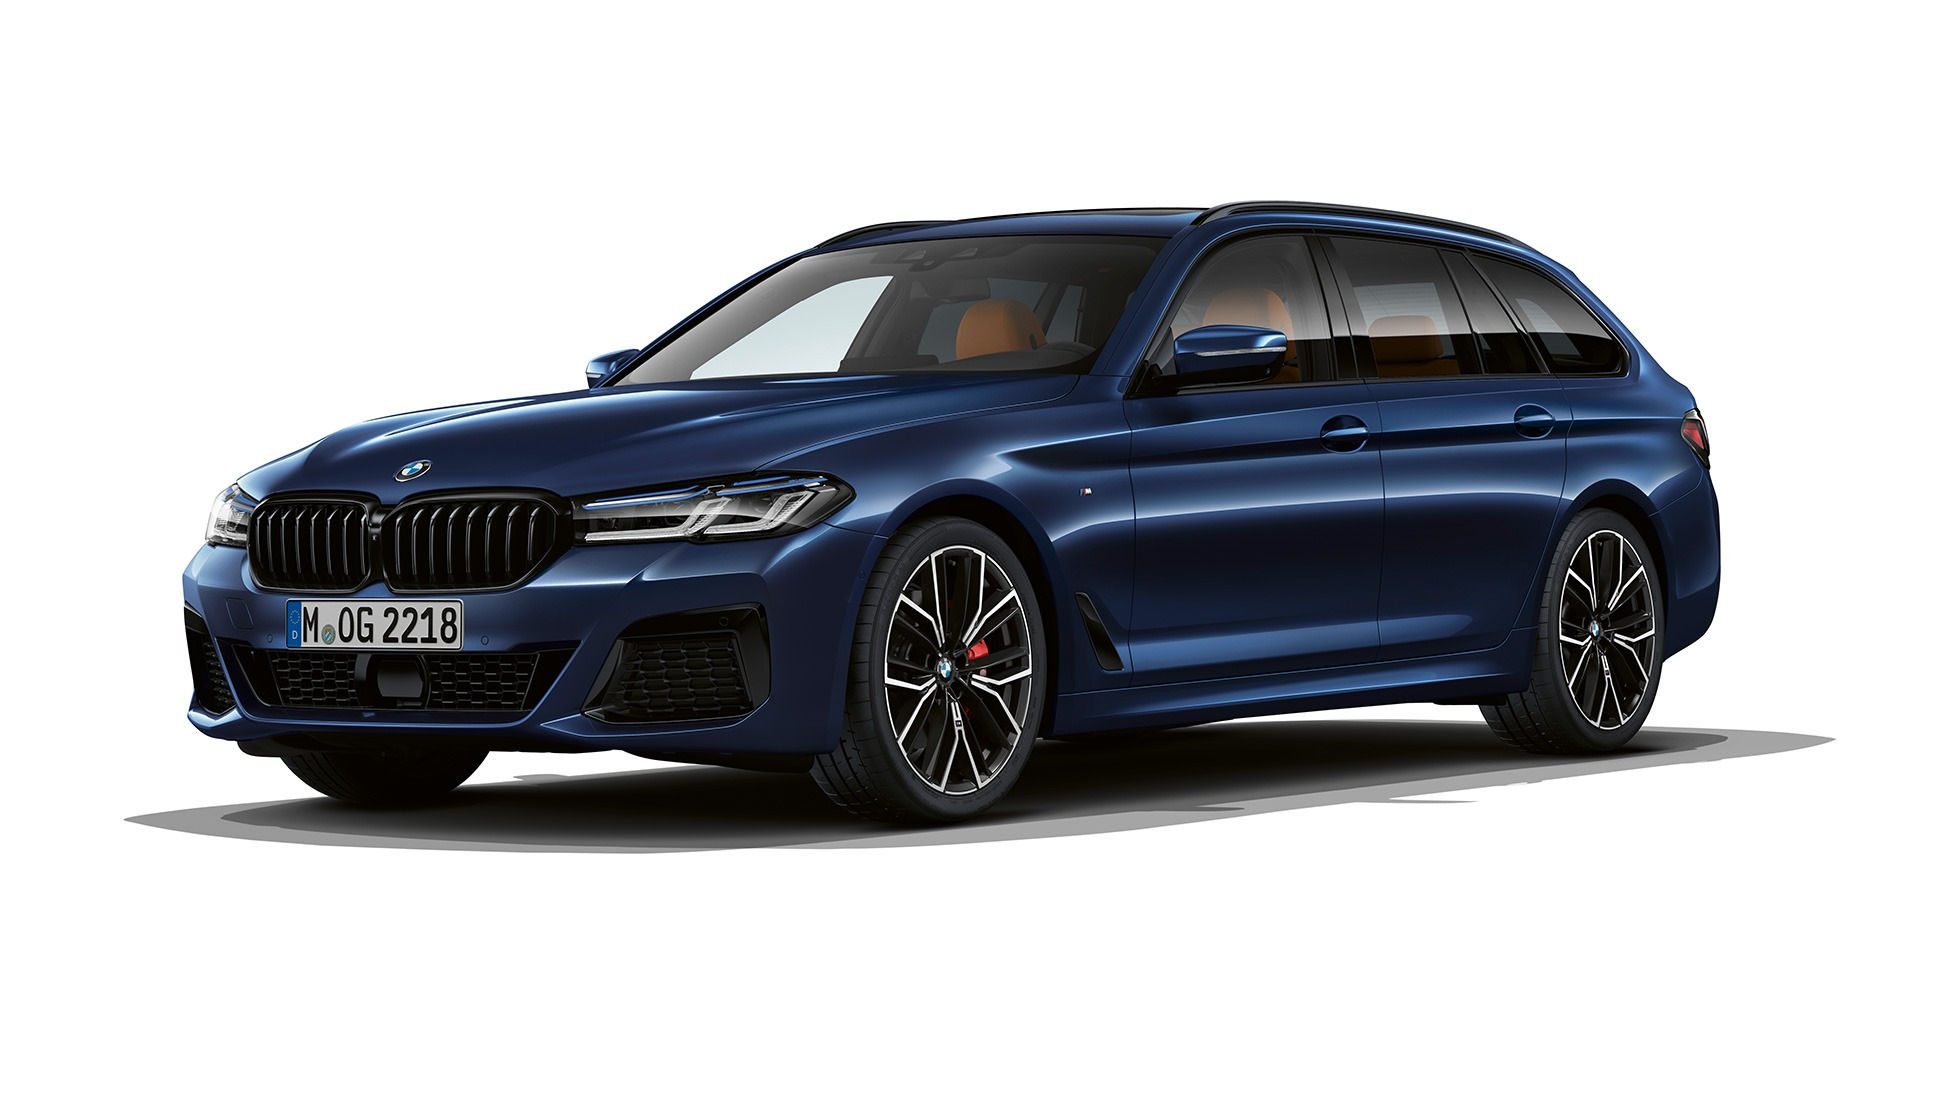 bmw-5-series-touring-models-and-equipment-lines-03-01